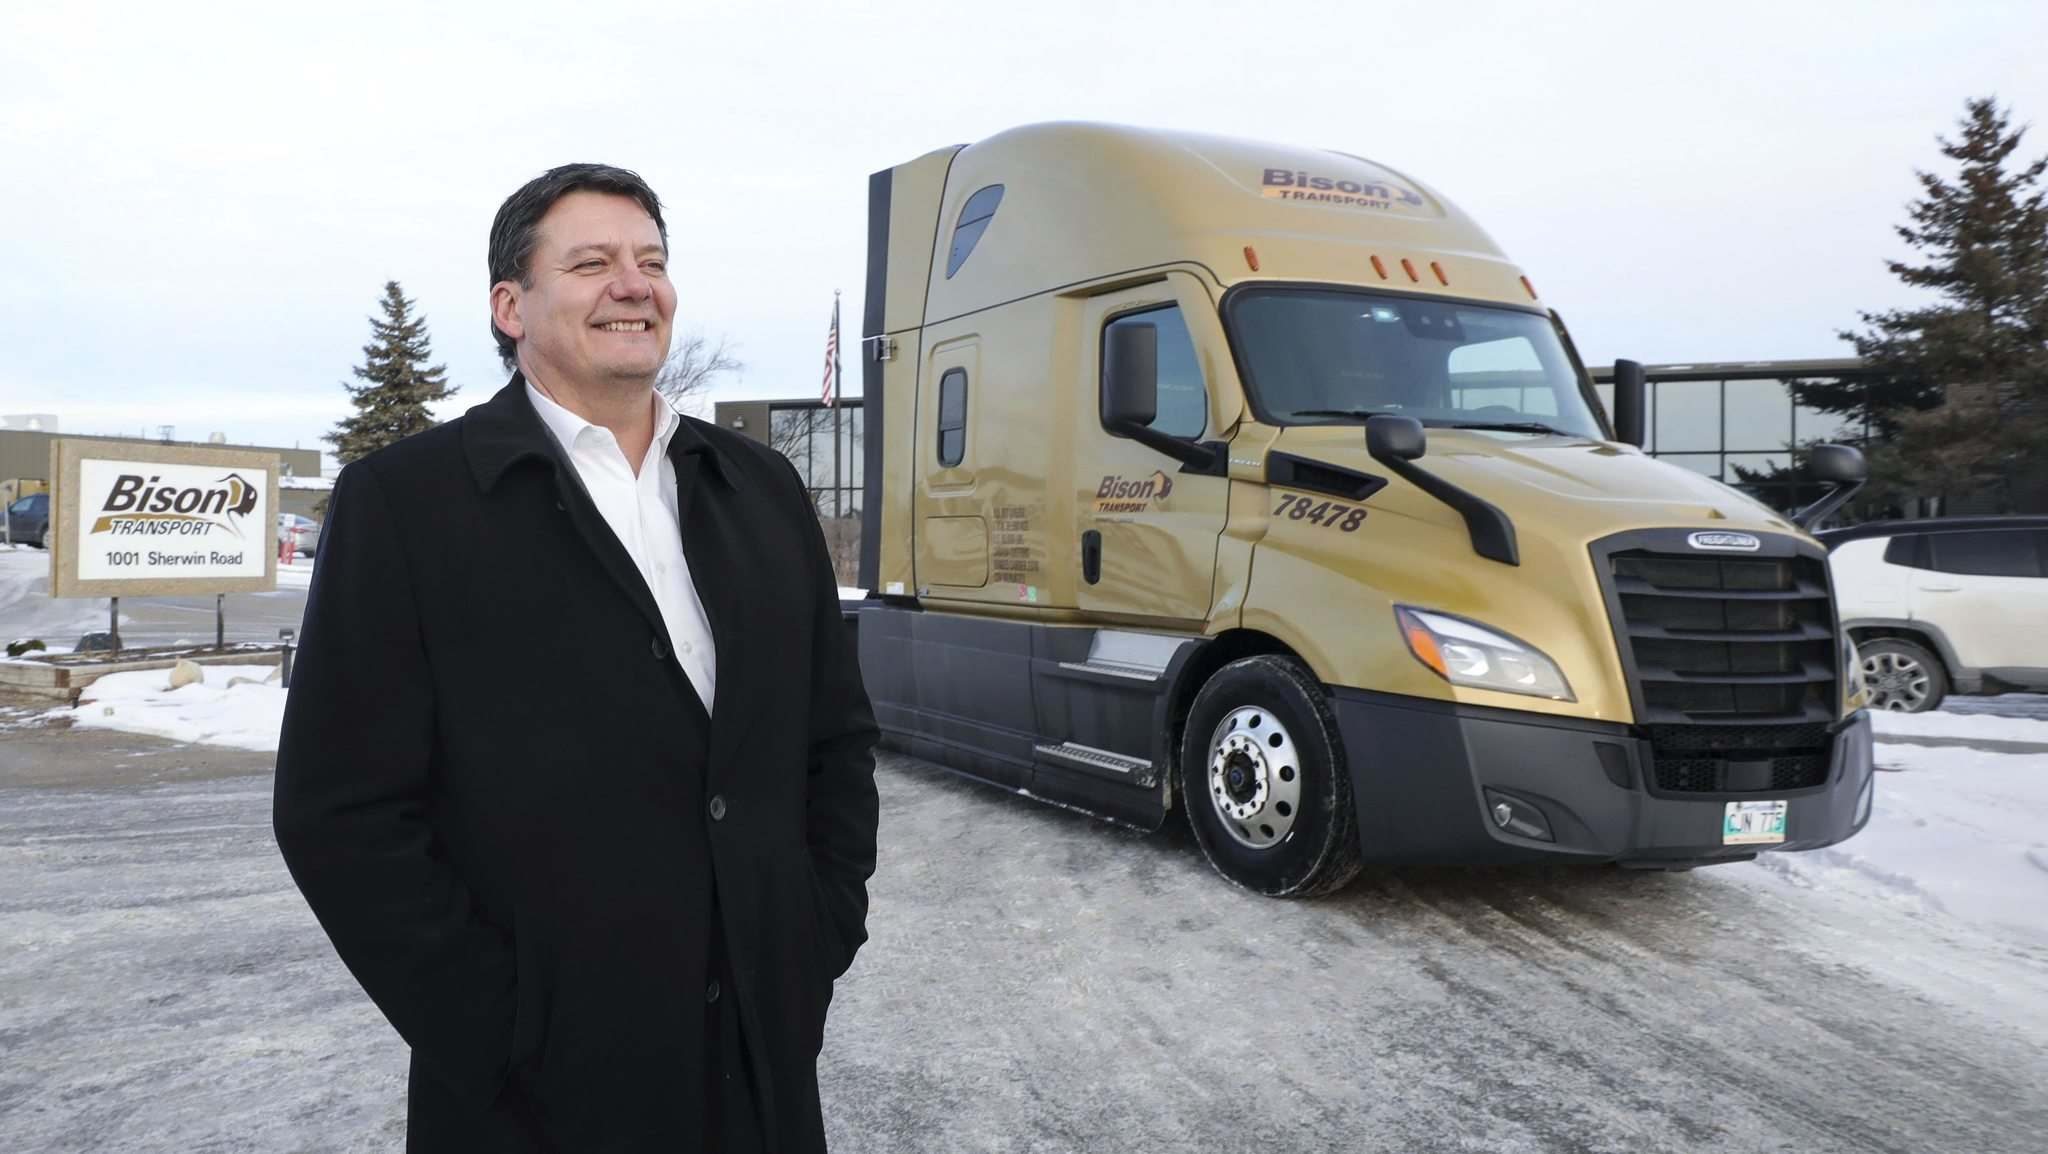 Rob Penner, CEO of Bison at Bison Transport, is staying on to run the company after James Richardson & Sons acquired the firm which is the sixth largest trucking company in the country.